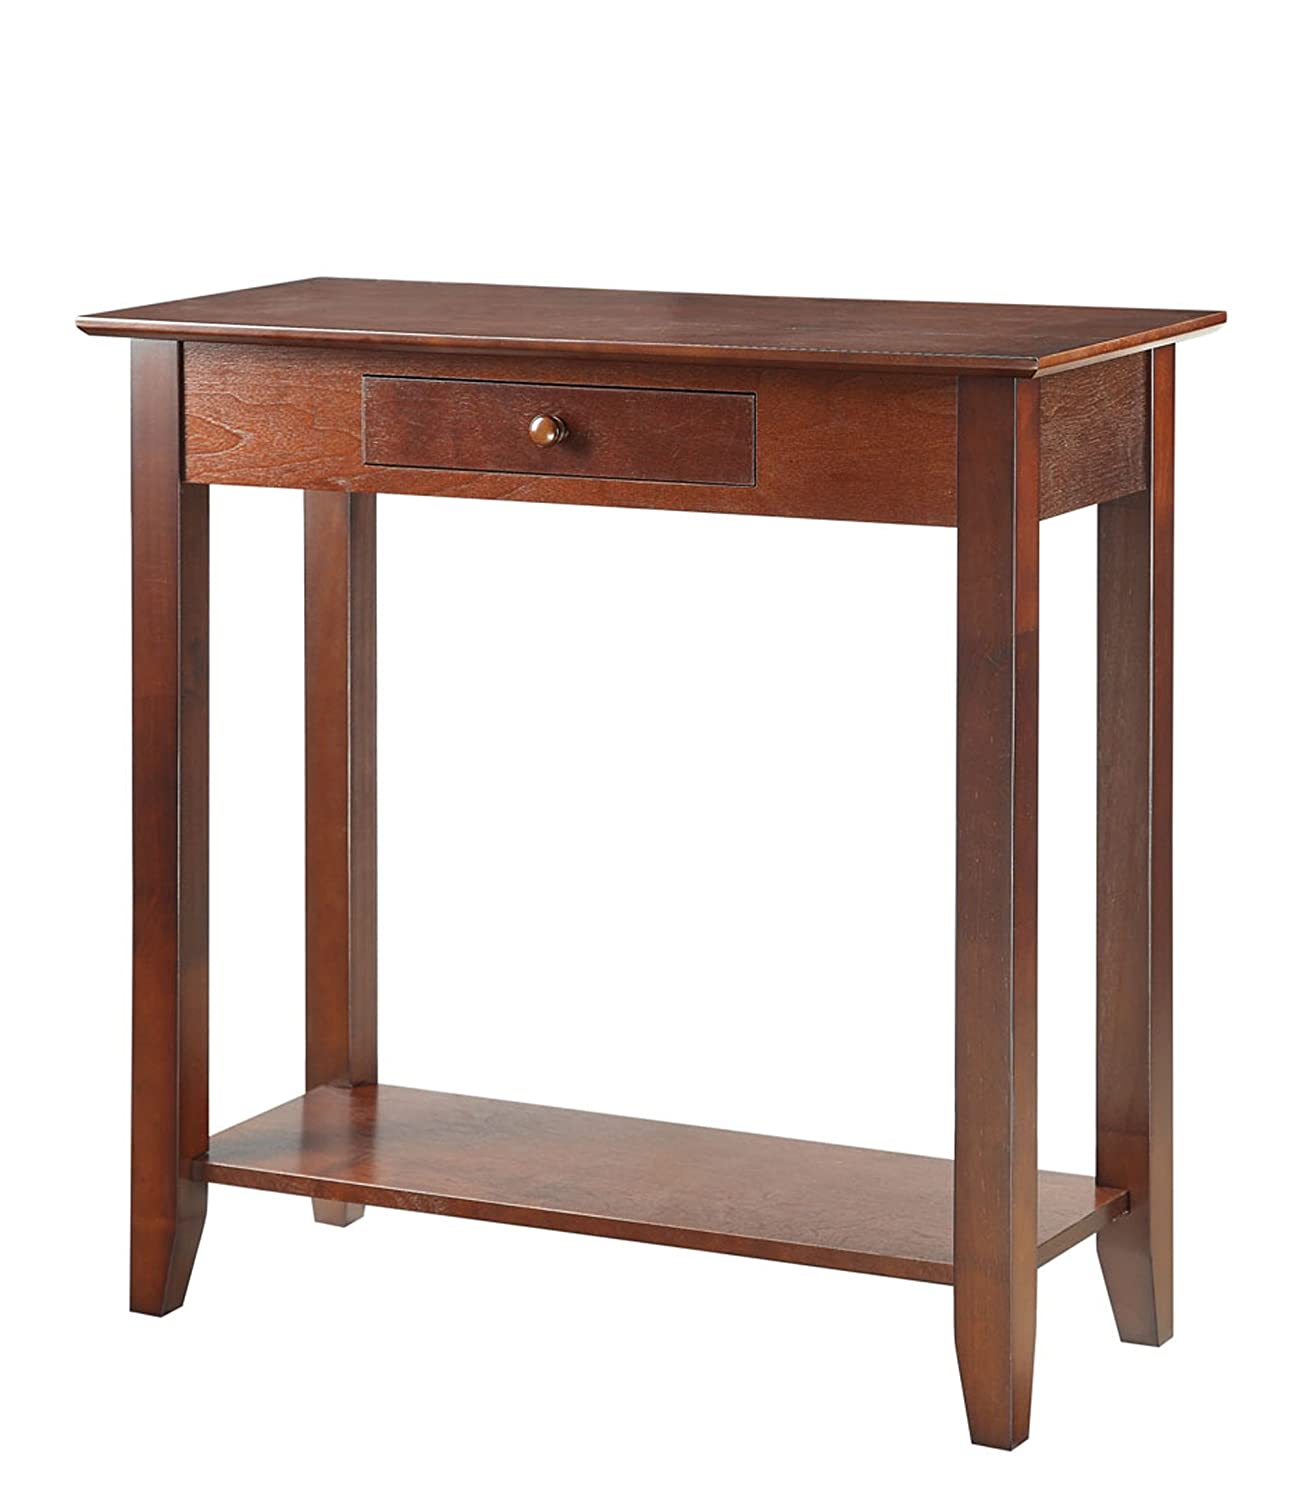 oak furniture opusbaskethalltable tables table living pine hall opus console side basket opubasht hallway room oakhandles